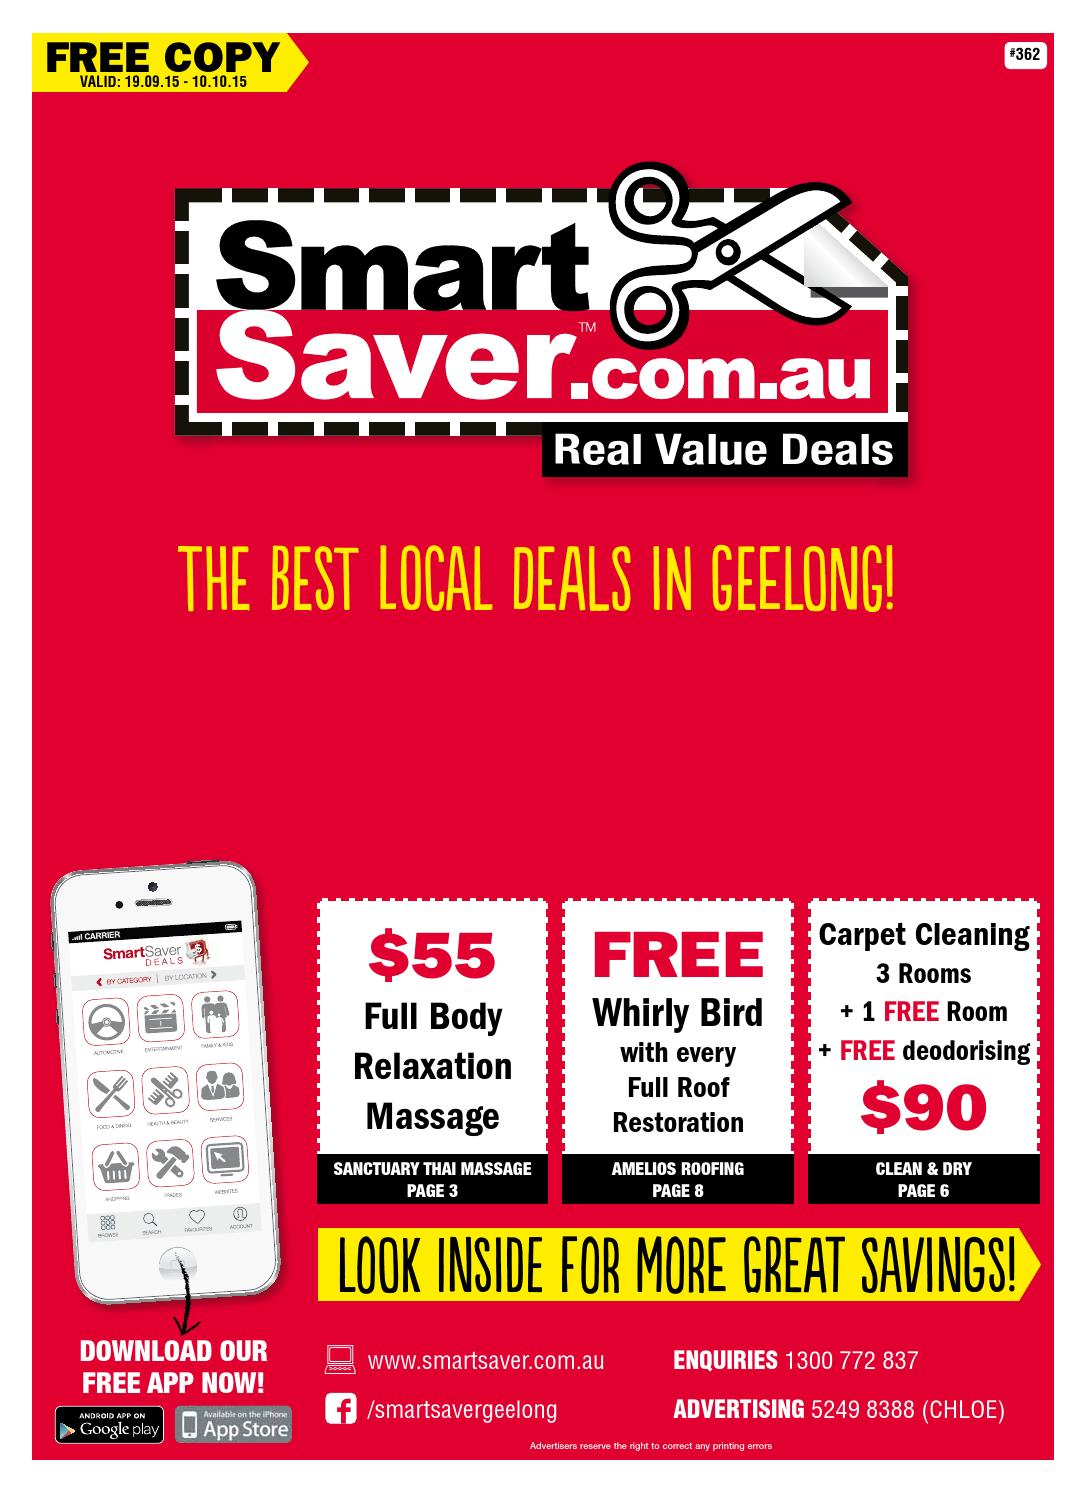 smart saver geelong issue 362 by smart saver real. Black Bedroom Furniture Sets. Home Design Ideas